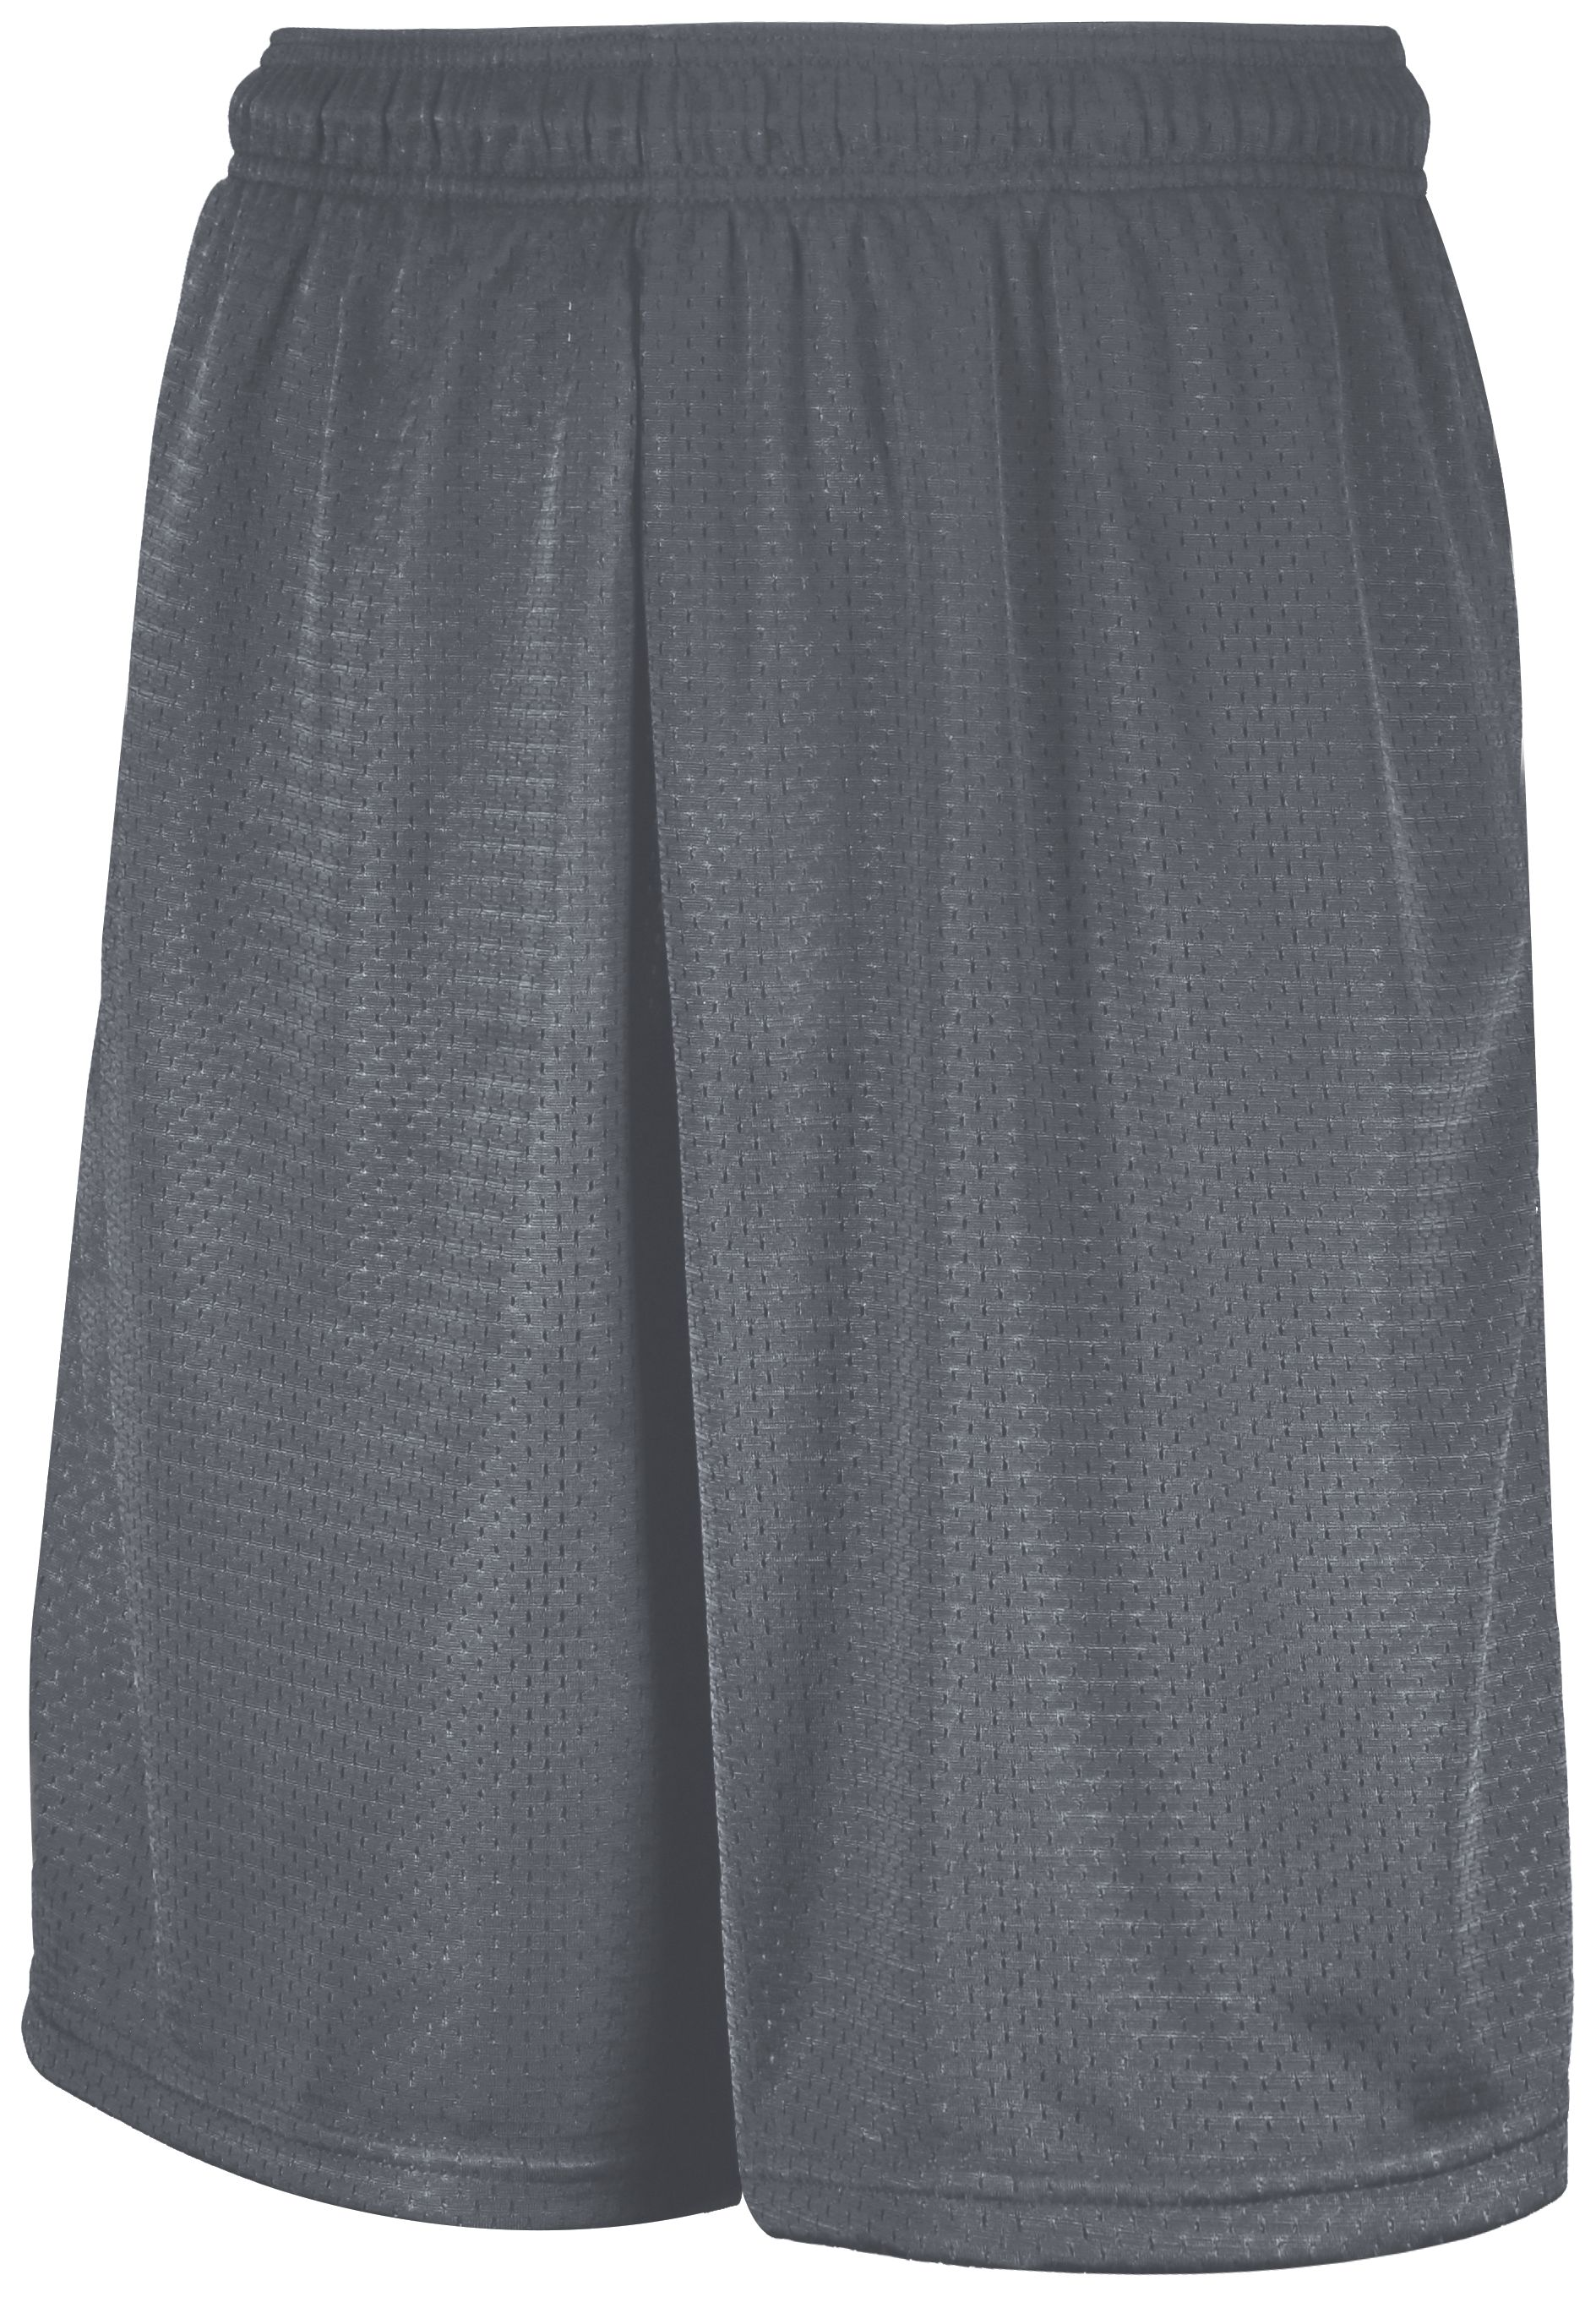 Mesh Shorts With Pockets - Steel